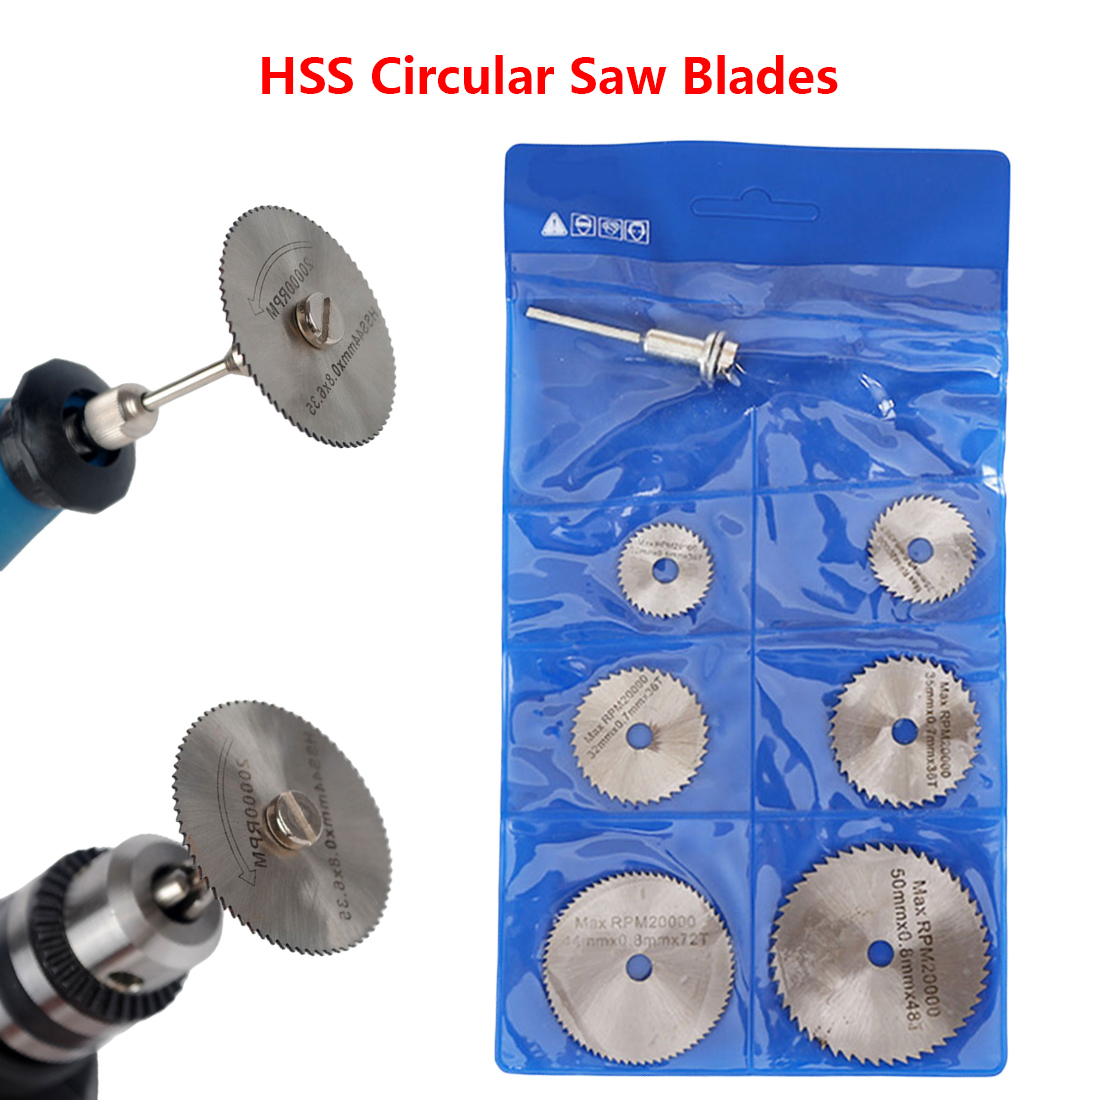 7 Pcs HSS Rotary Tools Circular Saw Blades Cutting Discs Mandrel Cutoff Cutter Power Tools Multitool